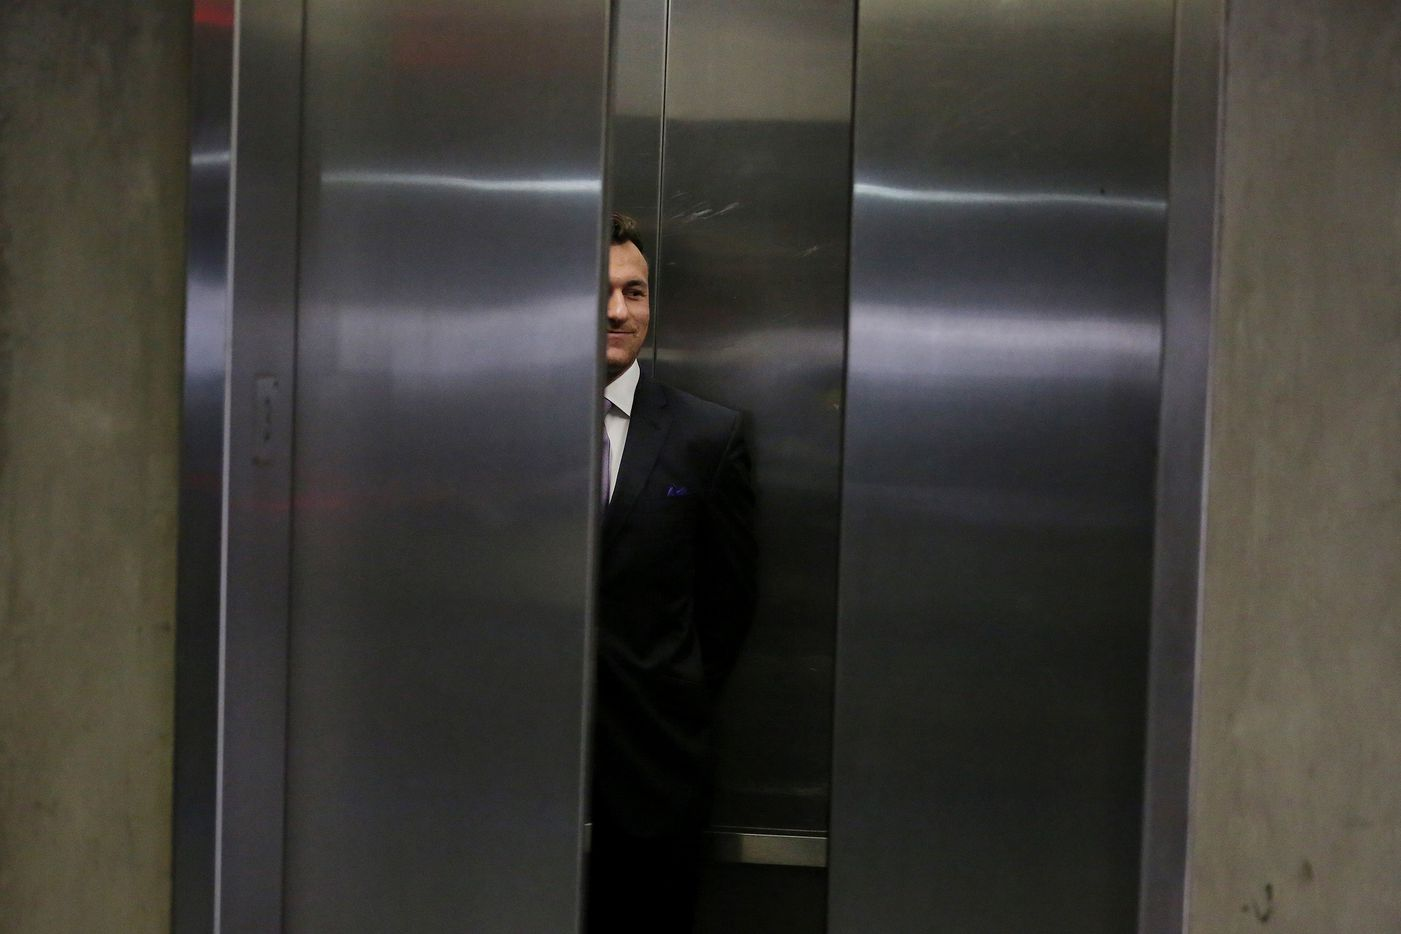 Former Texas A&M quarterback Johnny Manziel enters an elevator in a parking structure following a hearing with Judge Roberto Canas in Dallas County Criminal Court 10 at the Frank Crowley Courts Building in Dallas on Feb. 28. Manziel was in court to report on his progress as called for in the settlement of his misdemeanor domestic violence case.